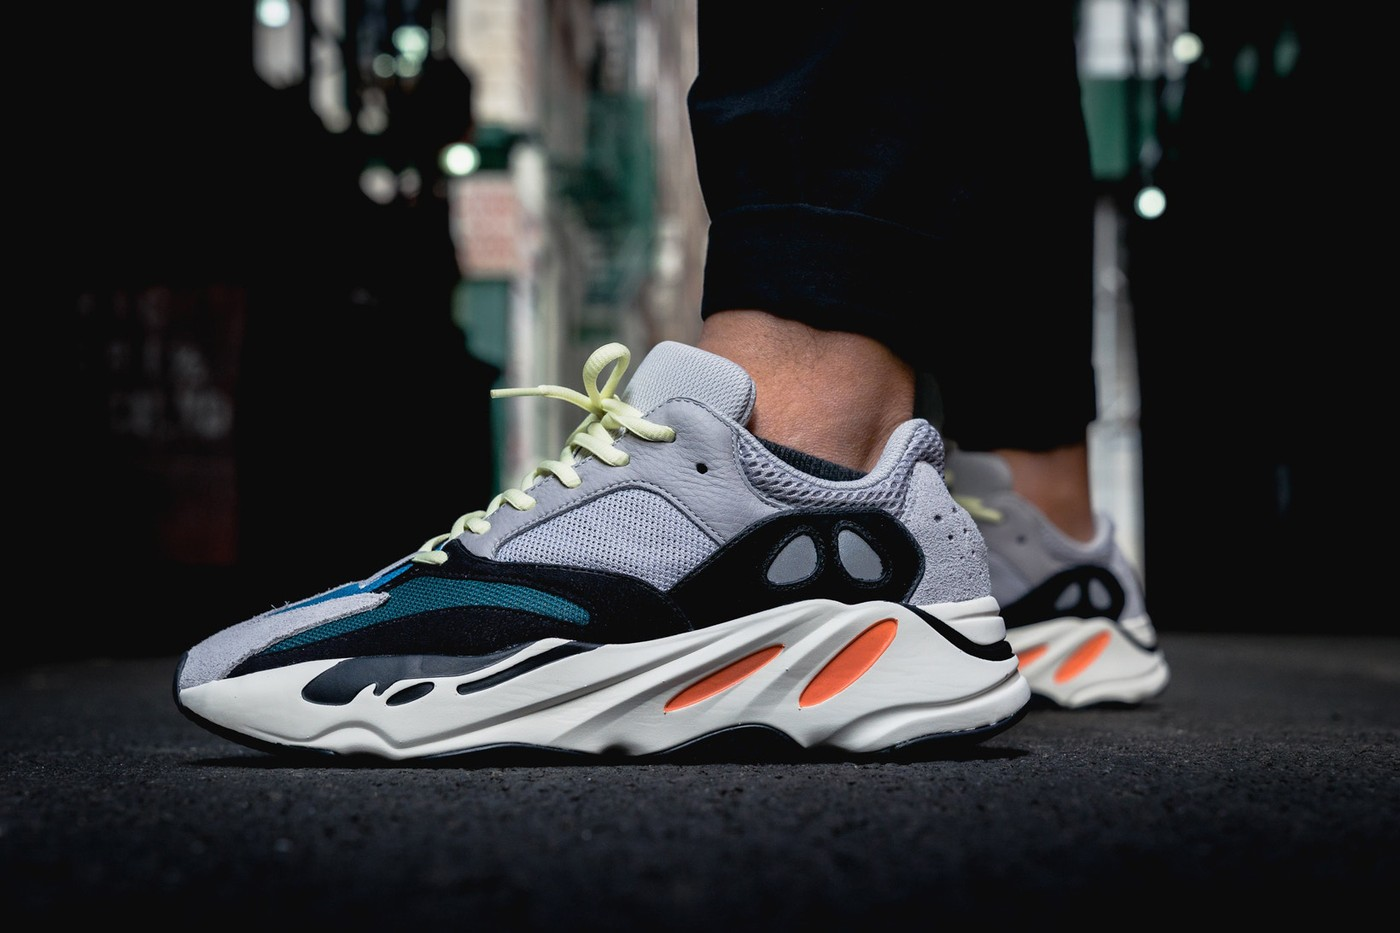 Yeezy Boost 700 'Waverunner'